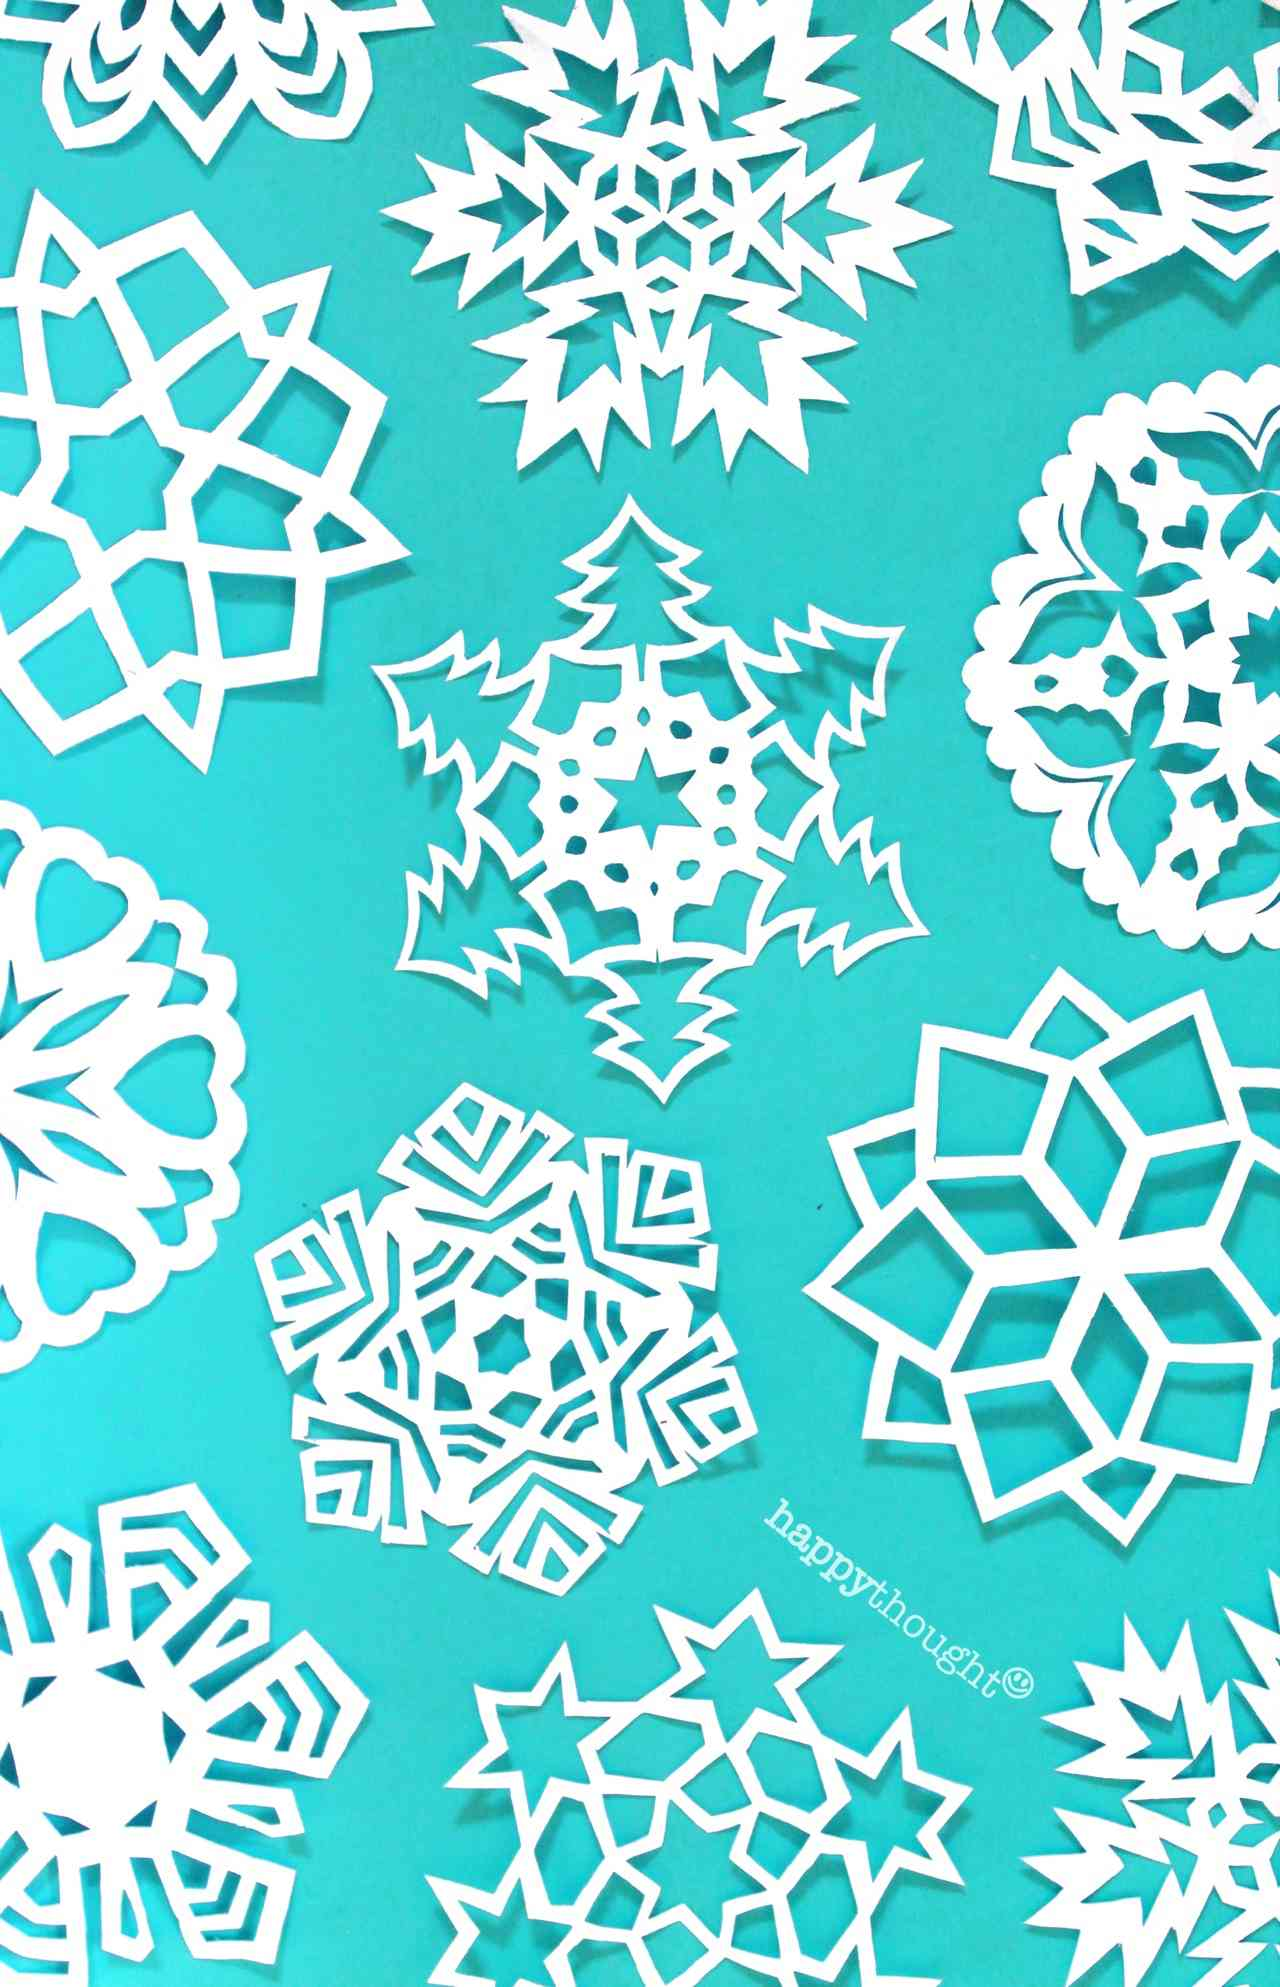 Patterns and designs to make your own snowflakes